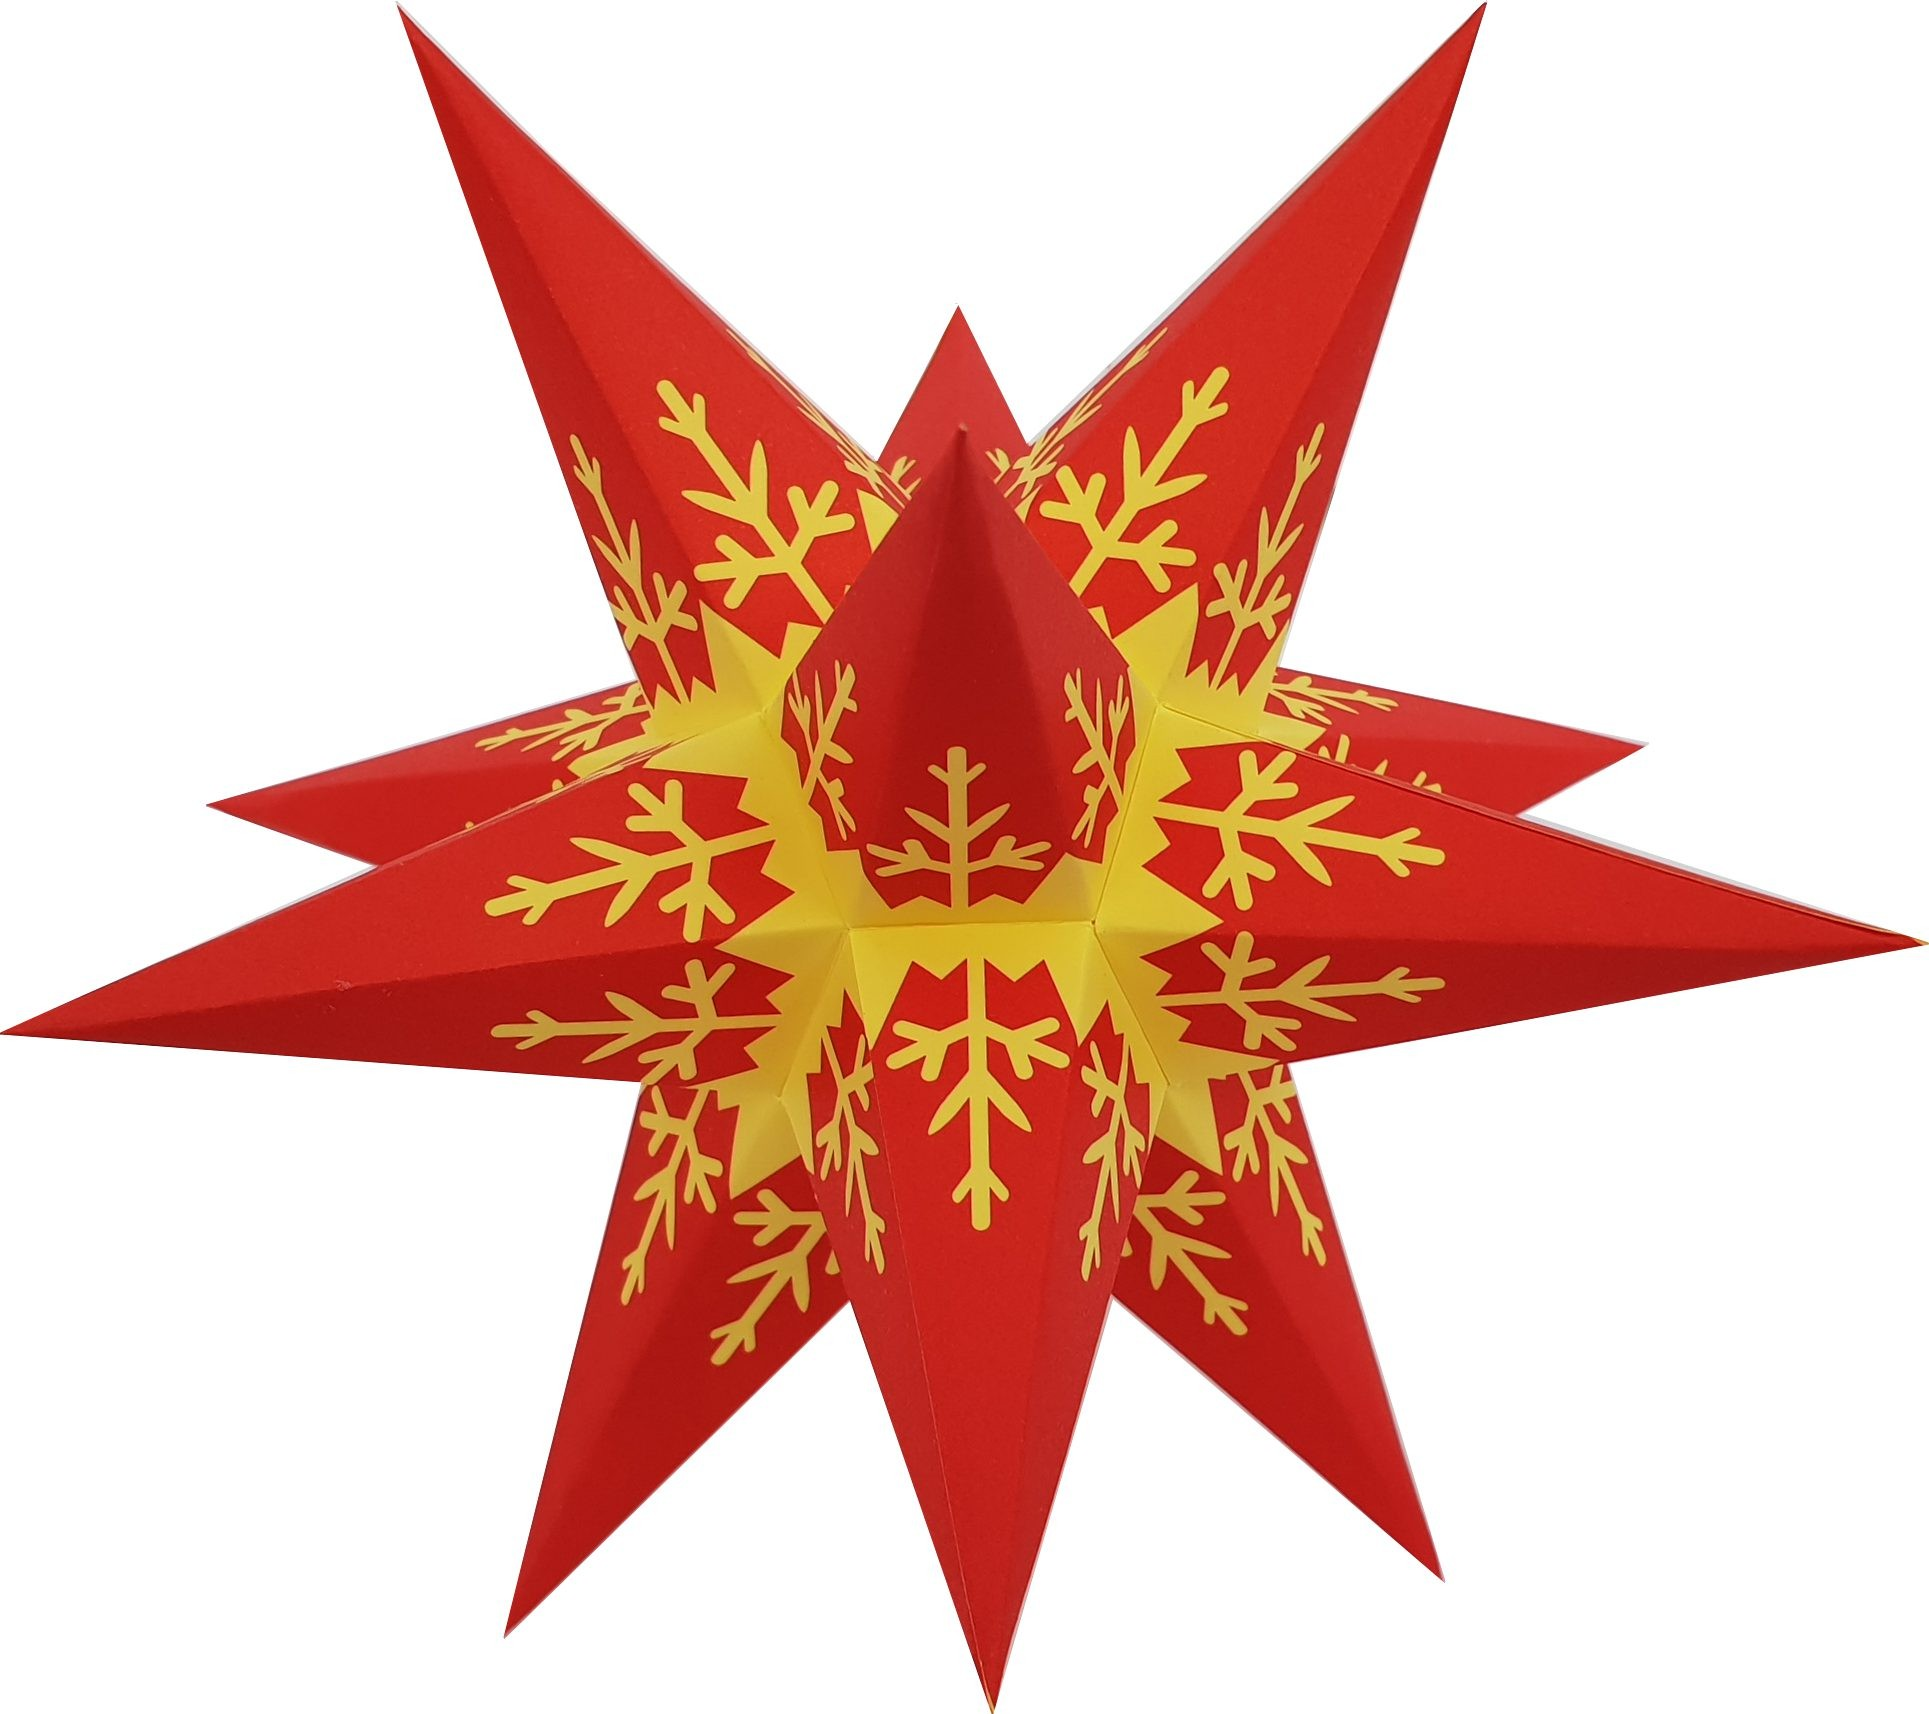 Marienberg Advent stars - red core with yellow pattern